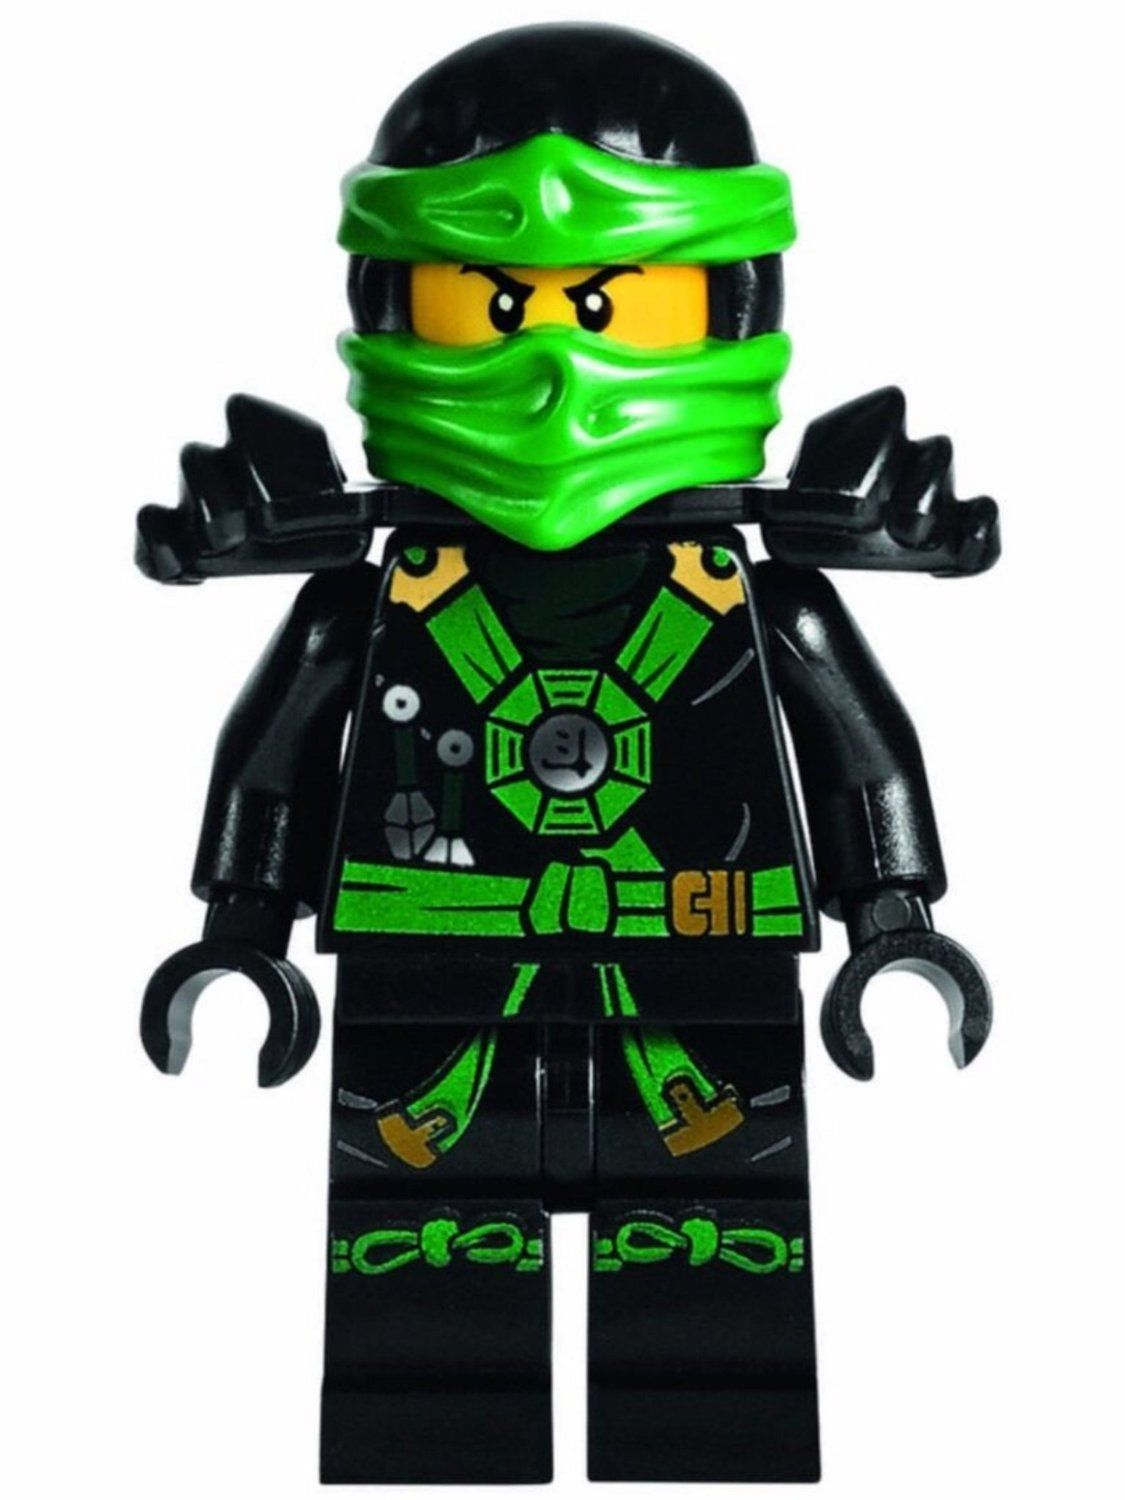 lego ninjago deepstone lloyd ninja minifigure spielzeug super alex of awesome. Black Bedroom Furniture Sets. Home Design Ideas